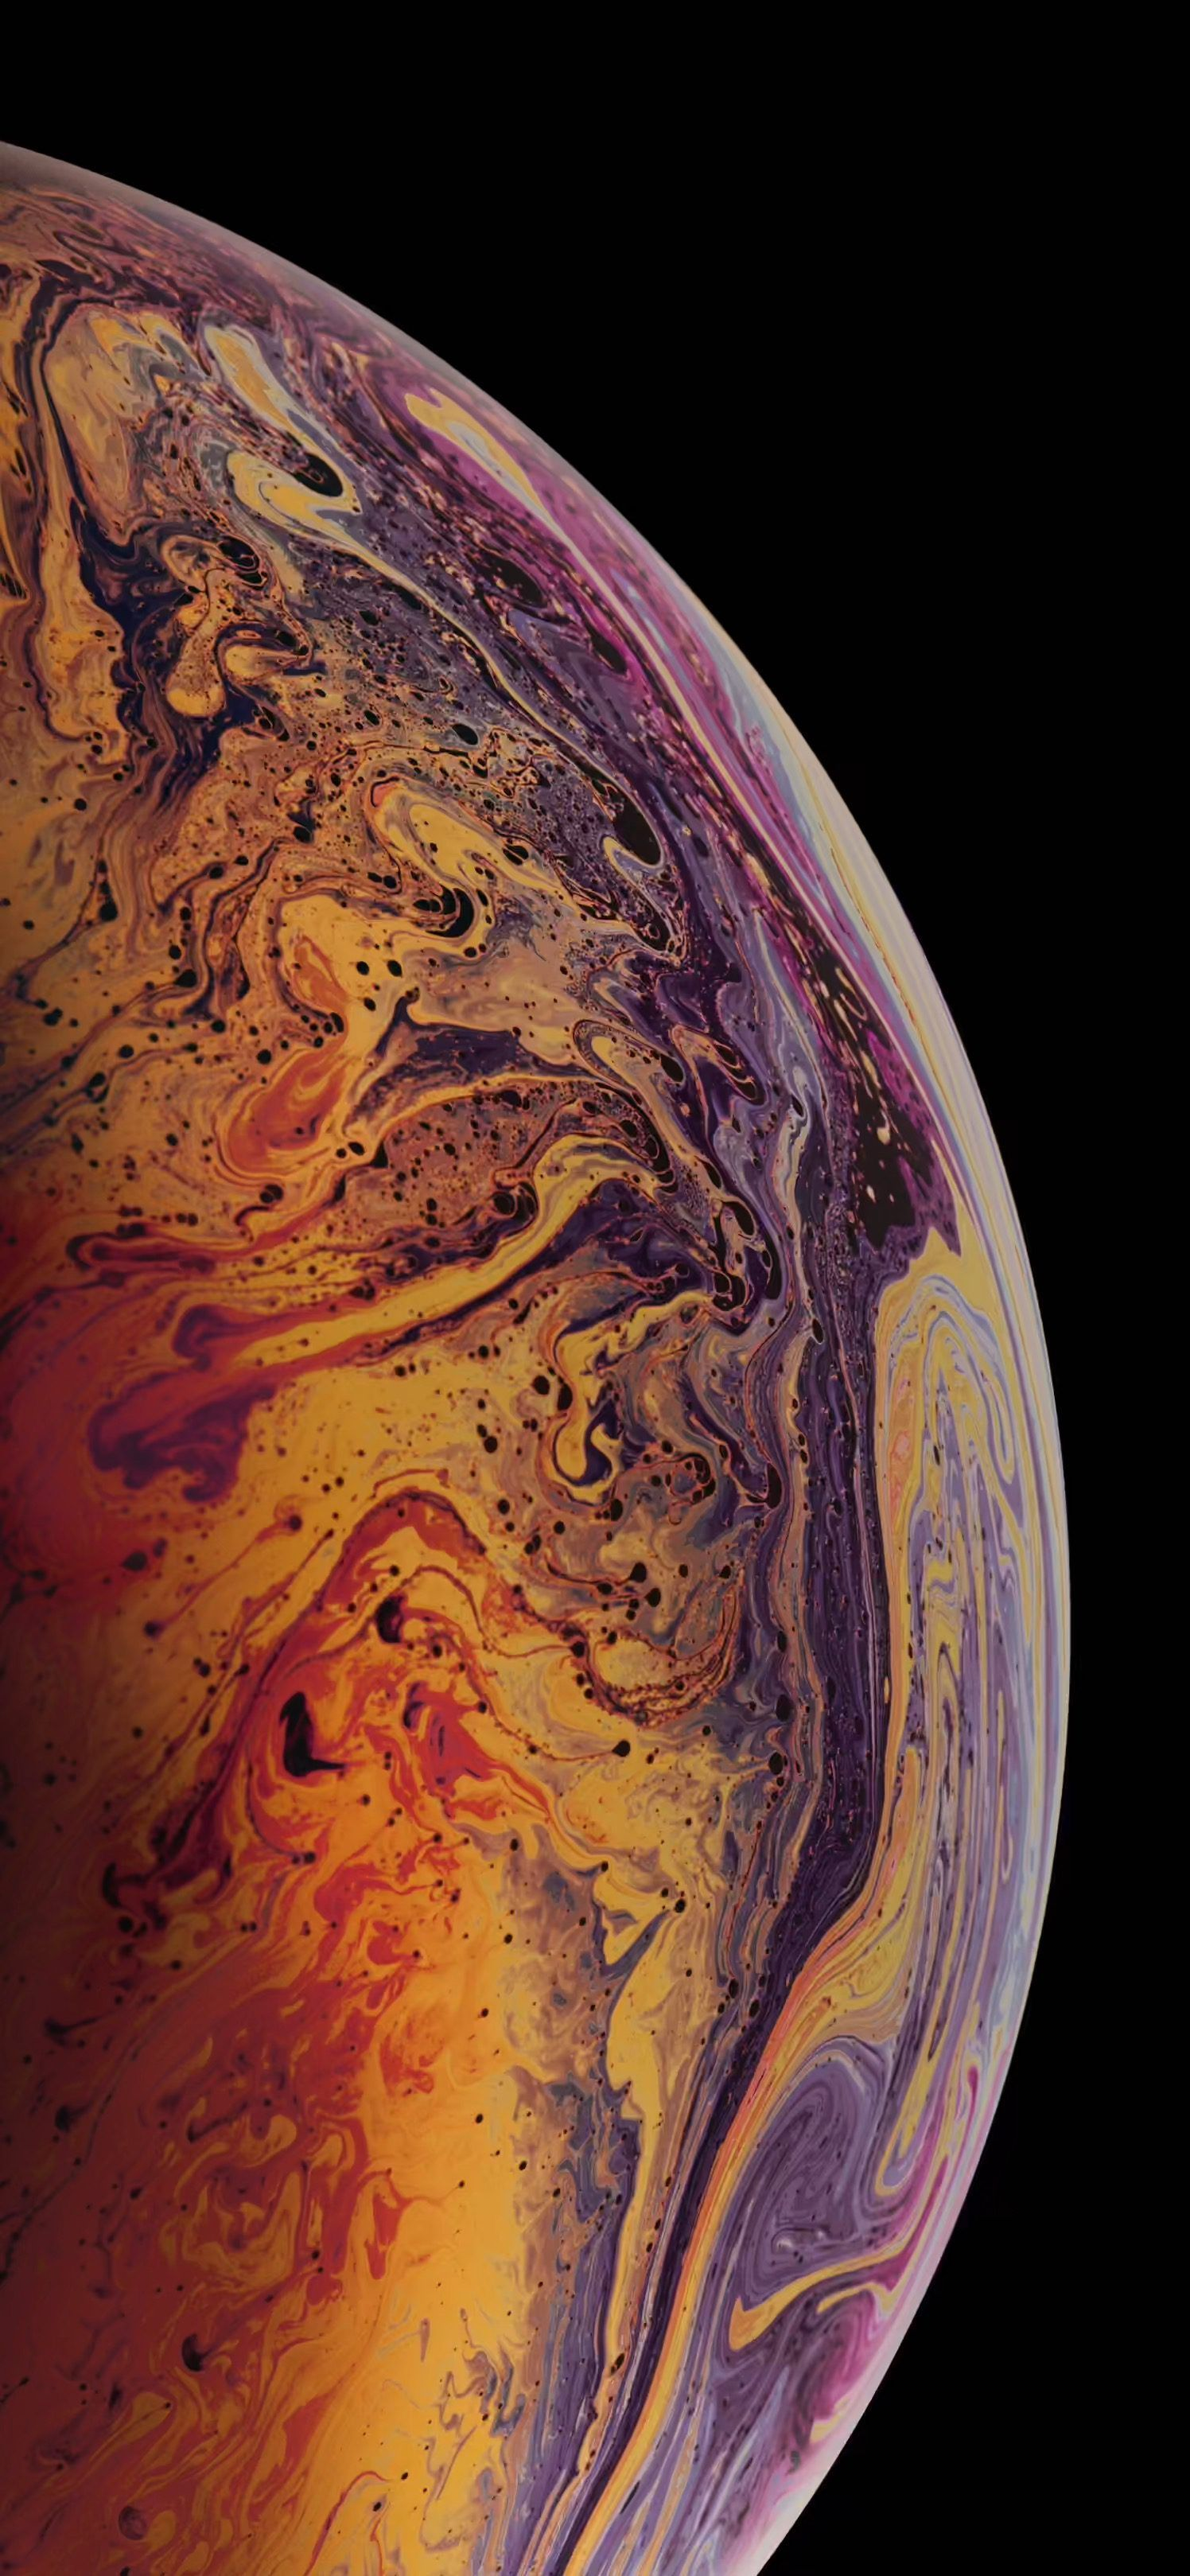 Iphone X Earth Wallpapers Top Free Iphone X Earth Backgrounds Wallpaperaccess